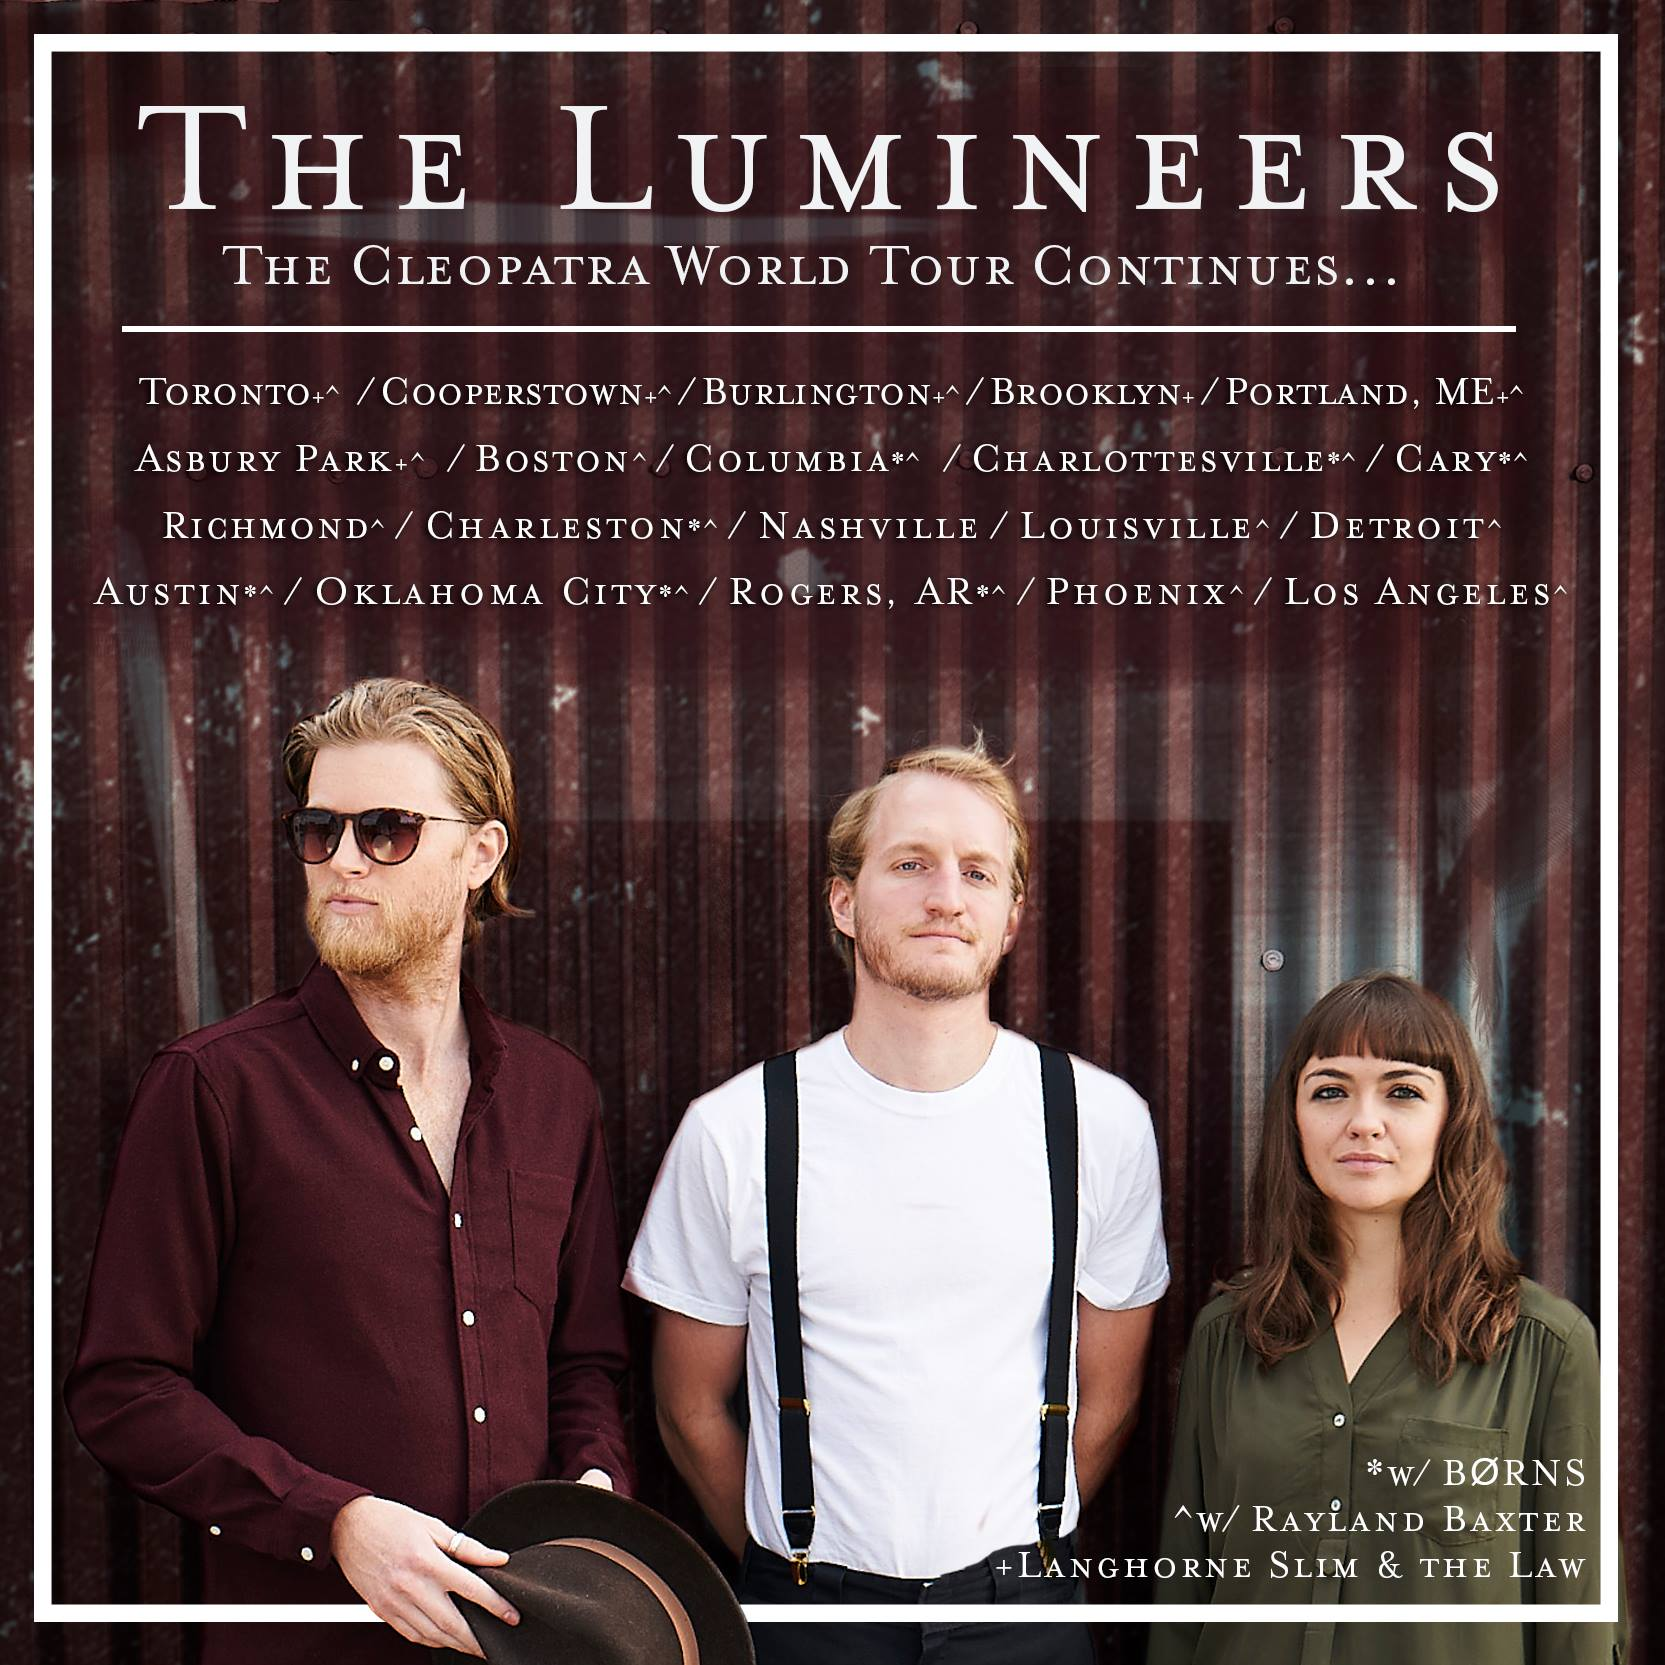 image for event The Lumineers